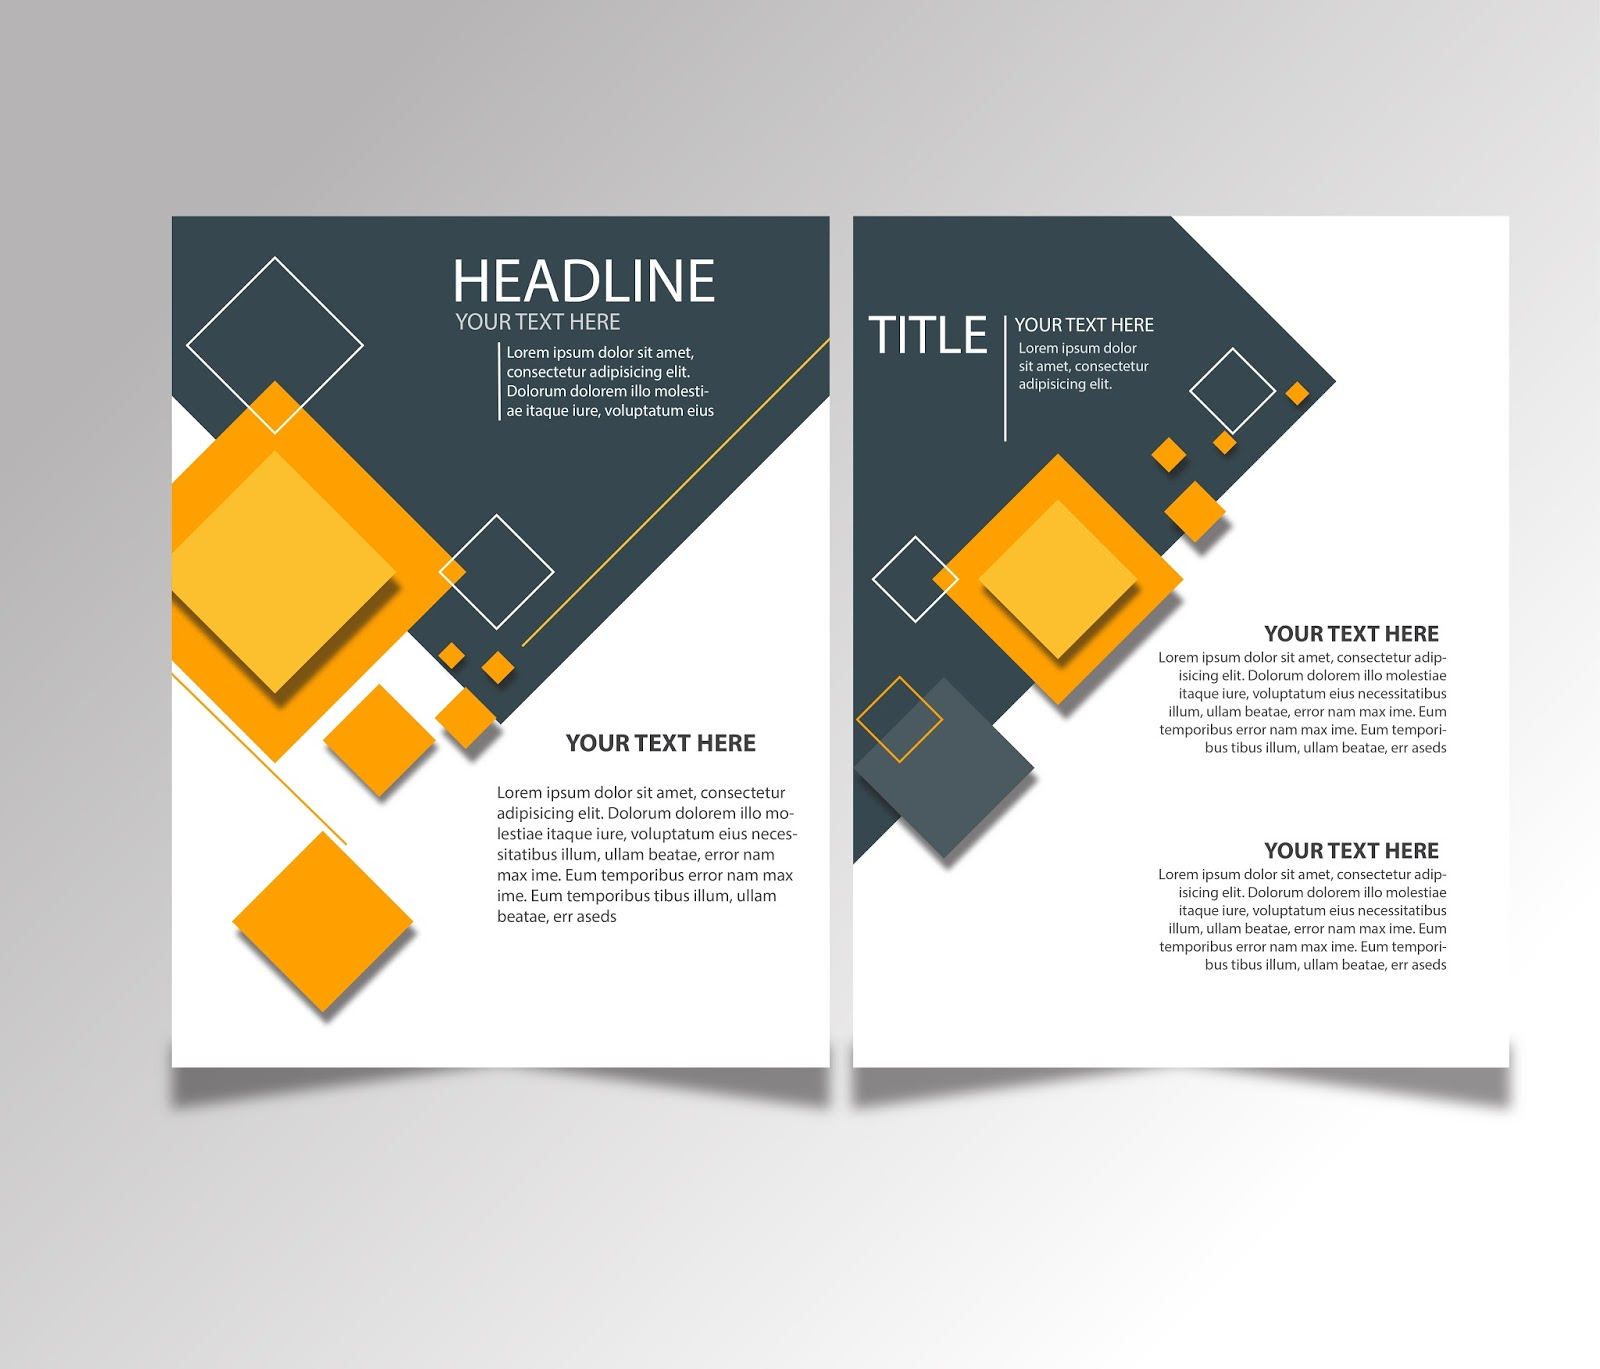 Free Download Brochure Design Templates Ai Files - Ideosprocess Throughout Brochure Template Illustrator Free Download